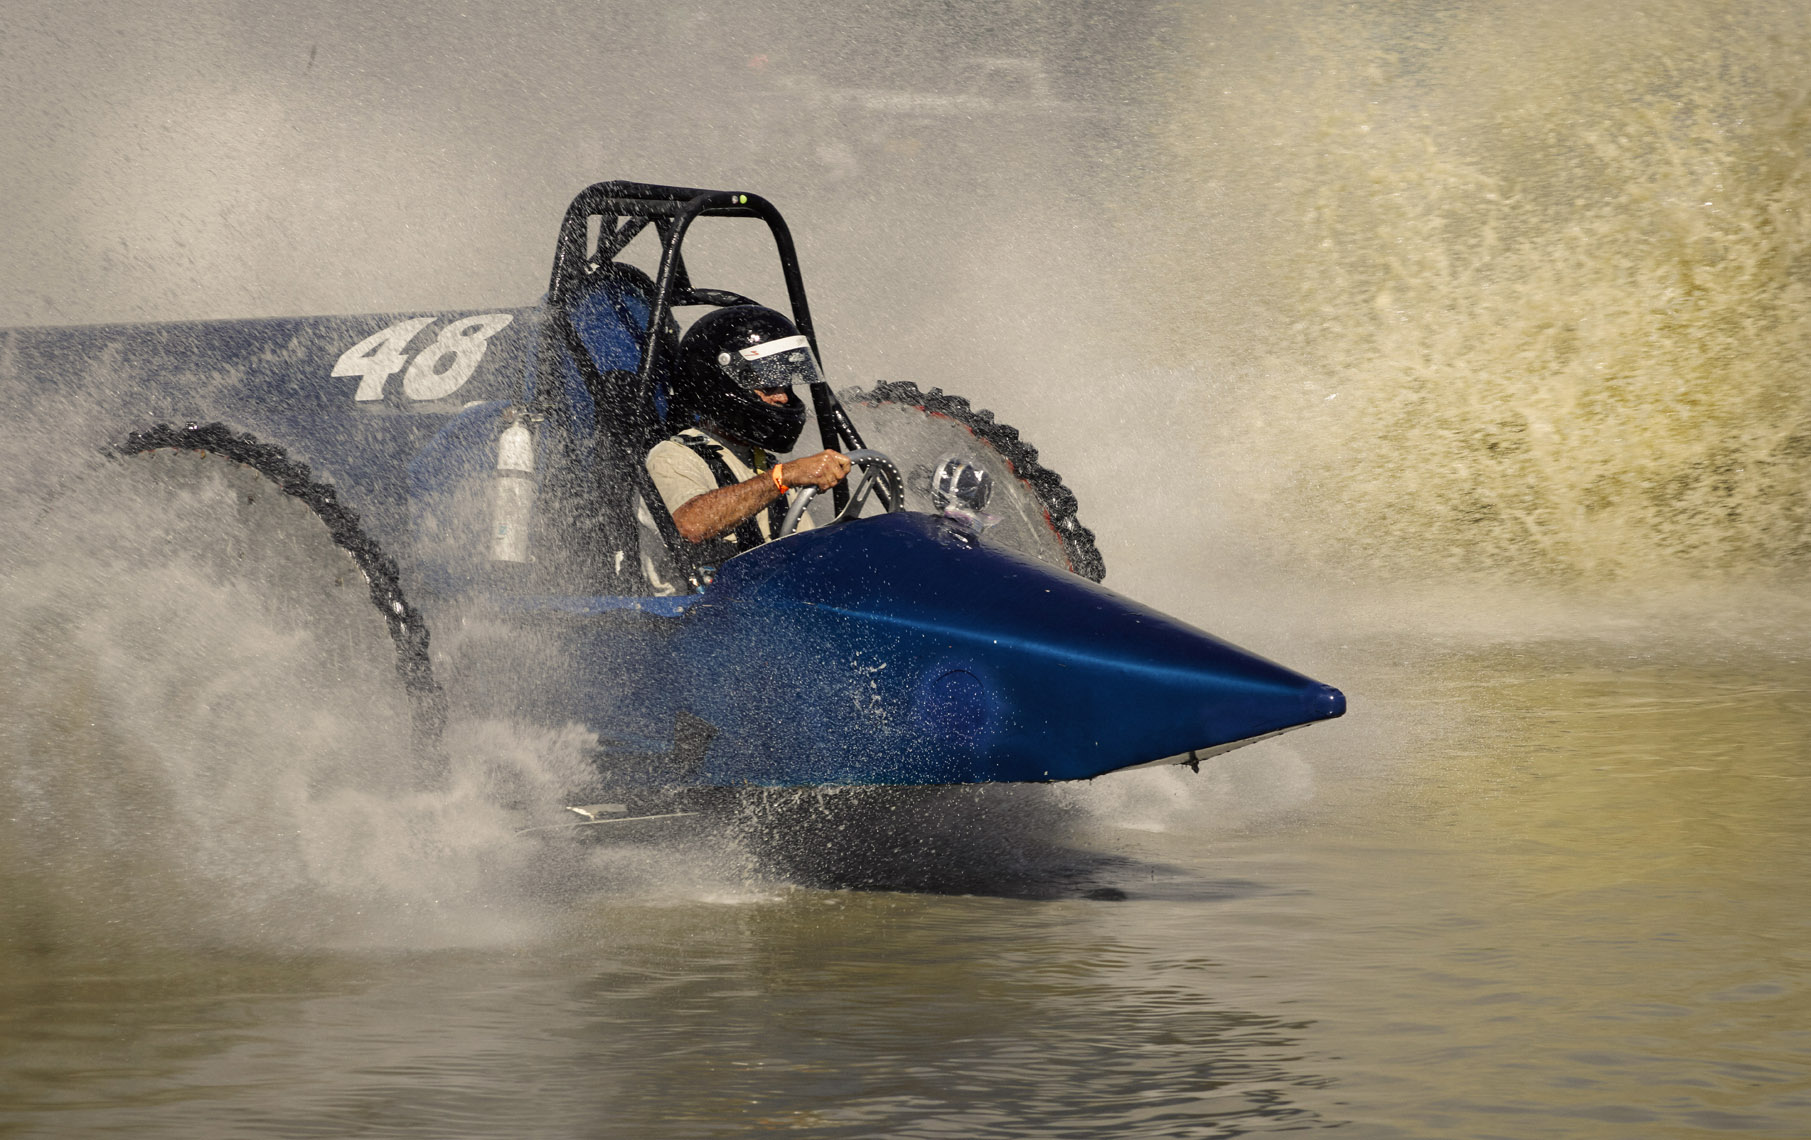 Swamp_Buggy_2014_0419